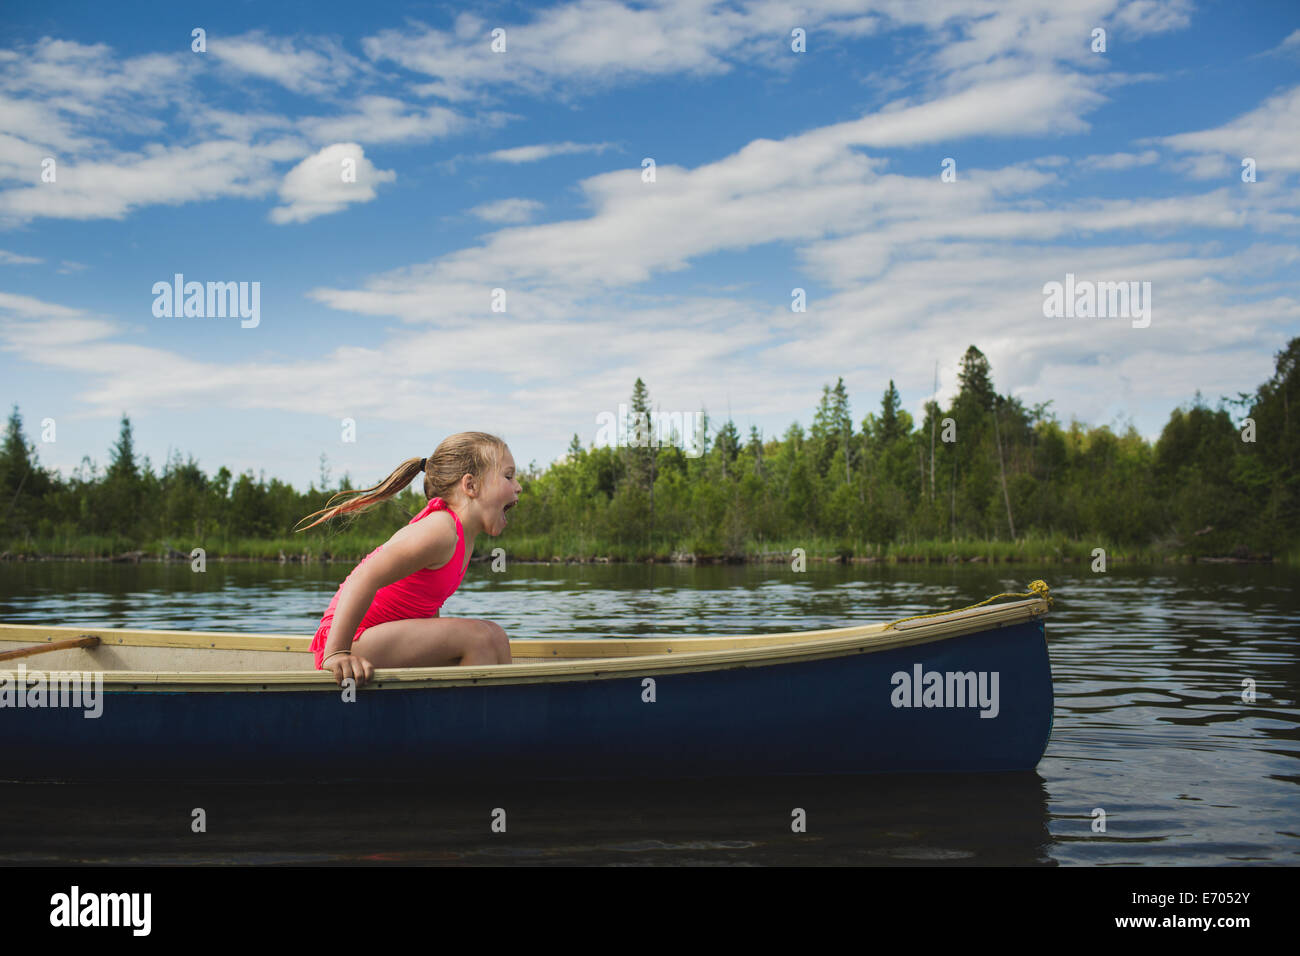 Excited girl sitting in canoe on Indian river, Ontario, Canada Stock Photo